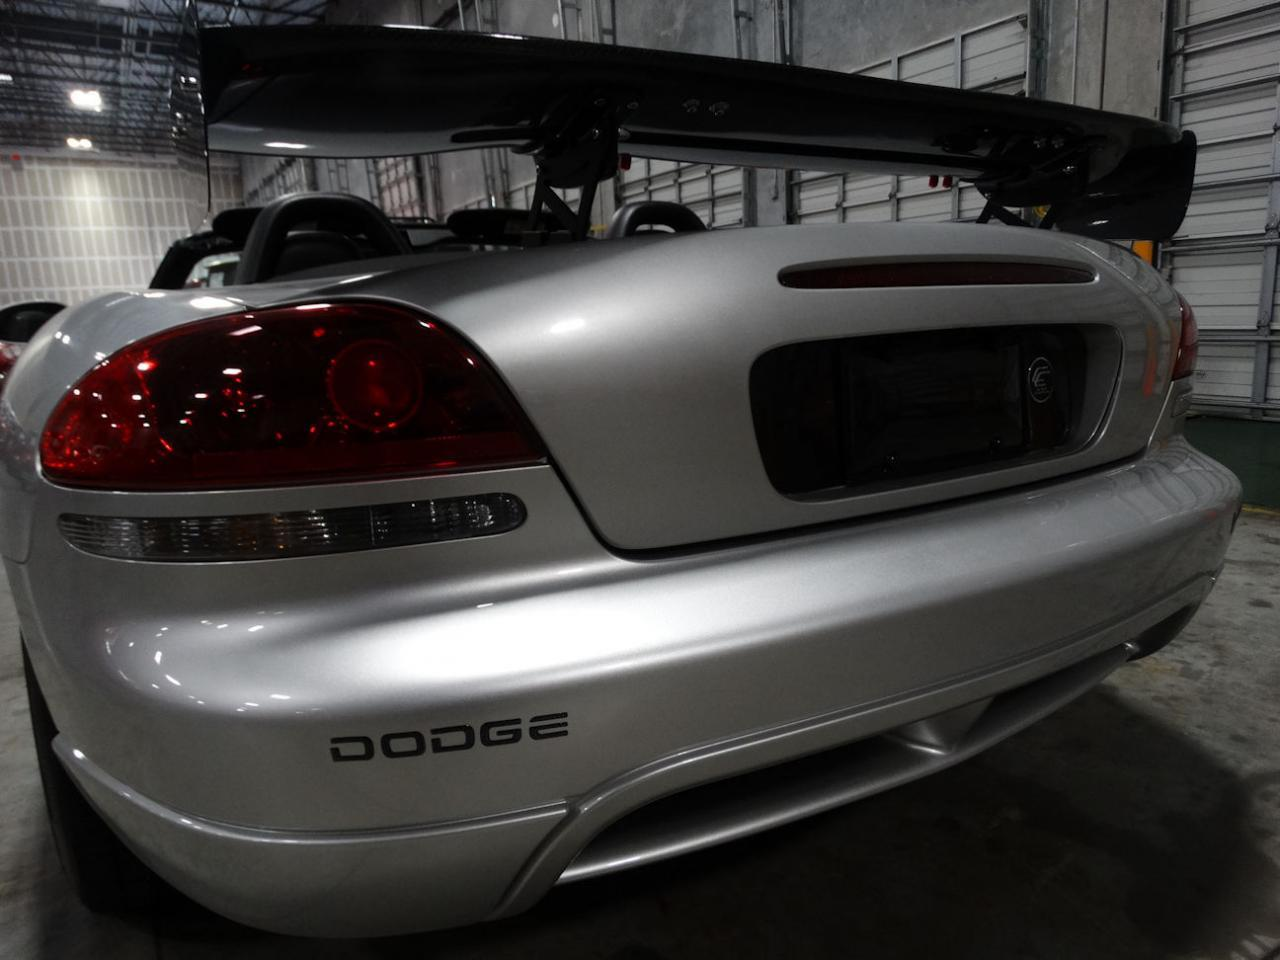 Large Picture of '04 Dodge Viper located in Coral Springs Florida - $54,000.00 - L6GU